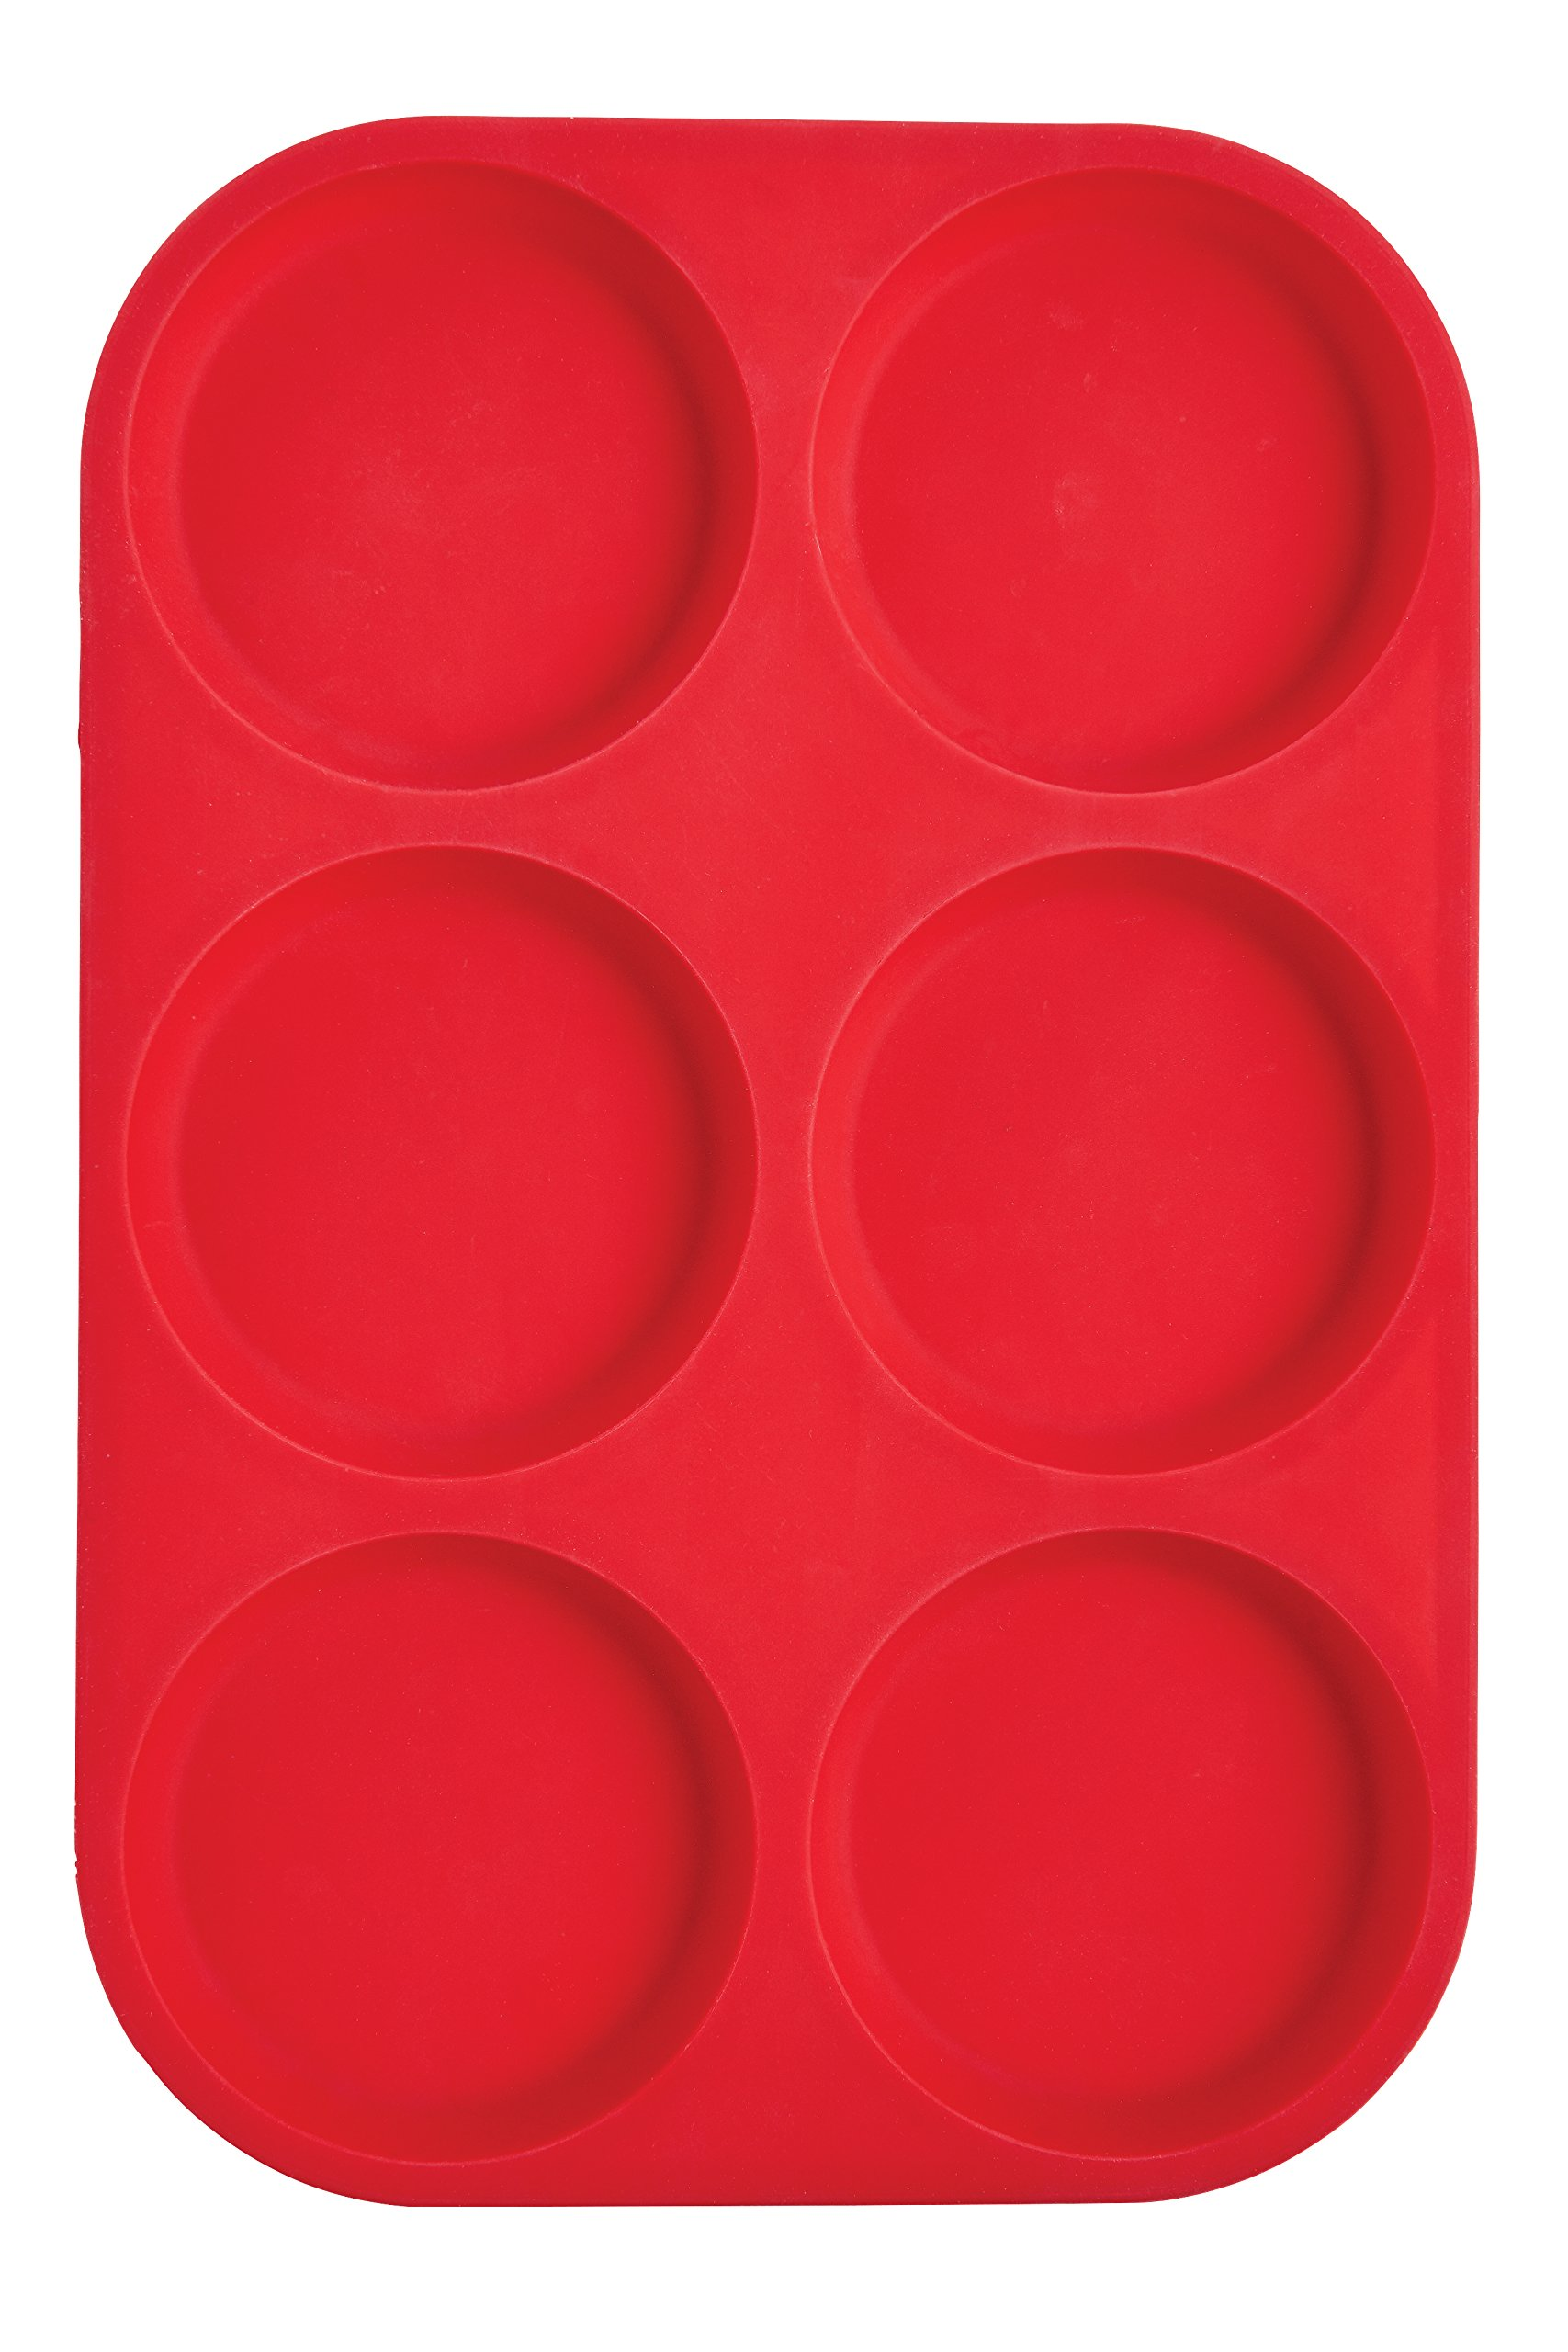 Mrs. Anderson's Baking 43817  6-Cup Muffin Top Pan, Non-Stick European-Grade Silicone by Mrs. Anderson's Baking